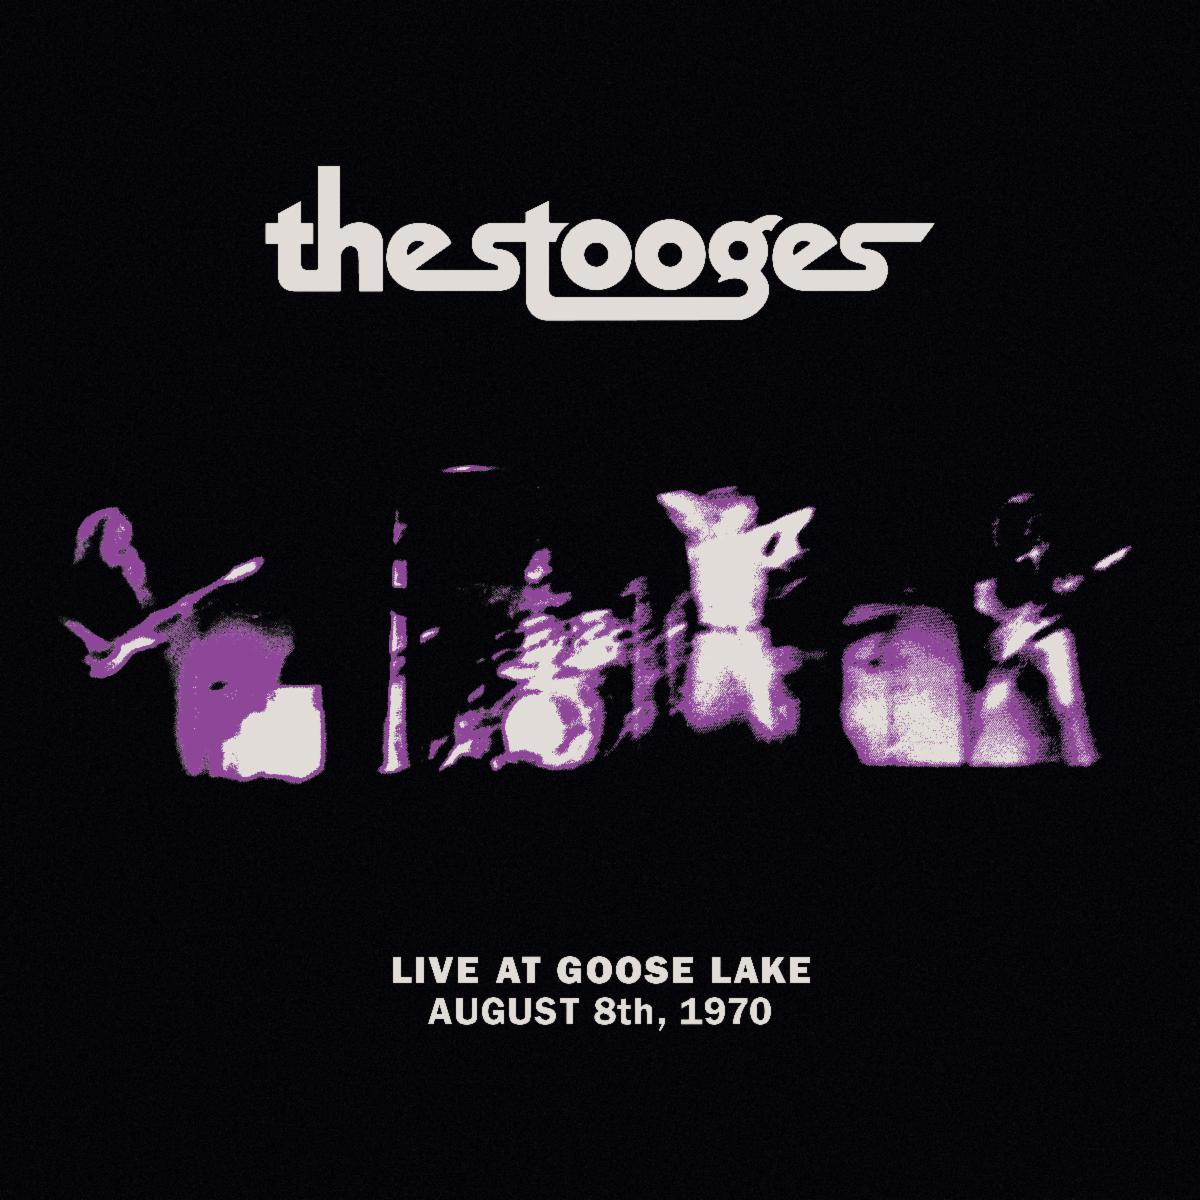 News – The Stooges Live at Goose Lake: August 8th, 1970